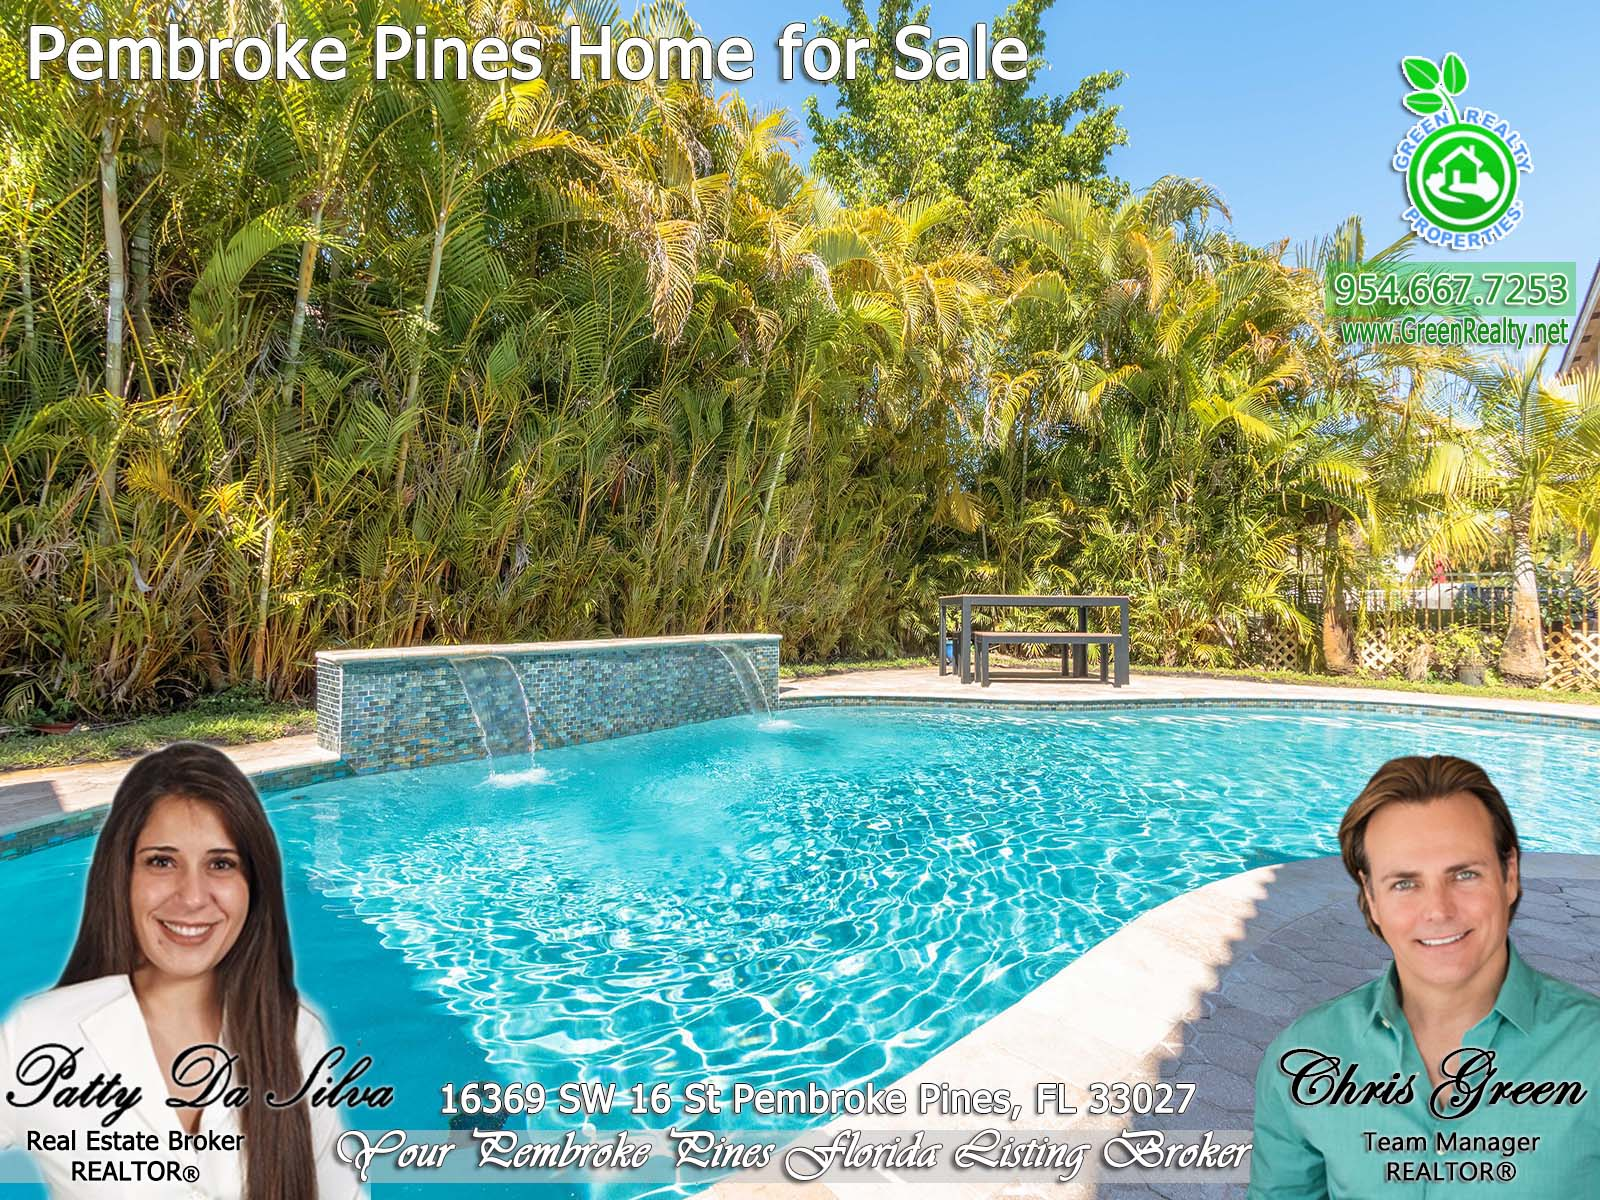 1 Pembroke Pines Realtor Broker Patty Da Silva south florida listing (1)